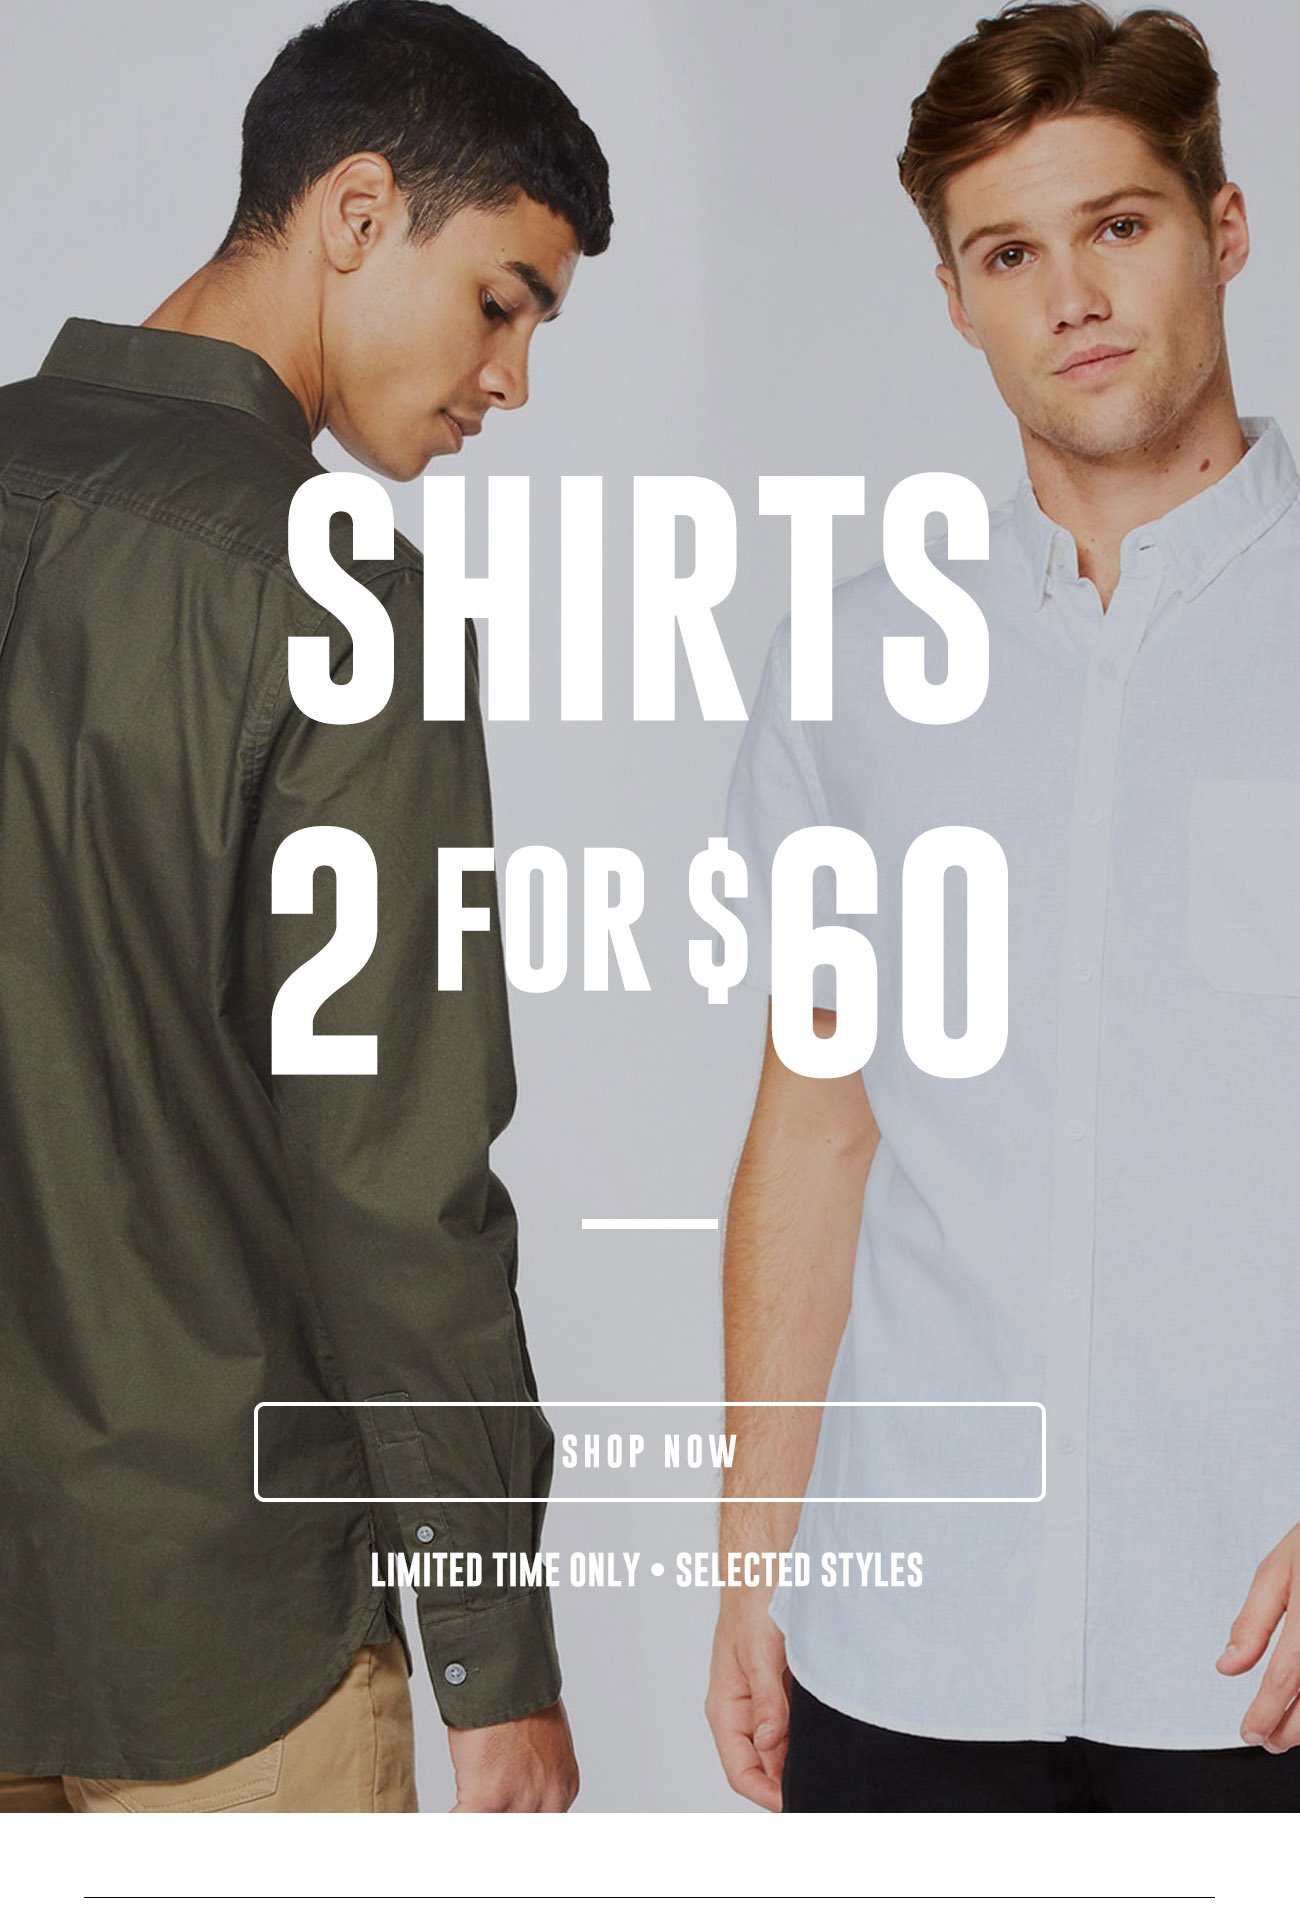 Shirts 2 for $60 - Limited time only.